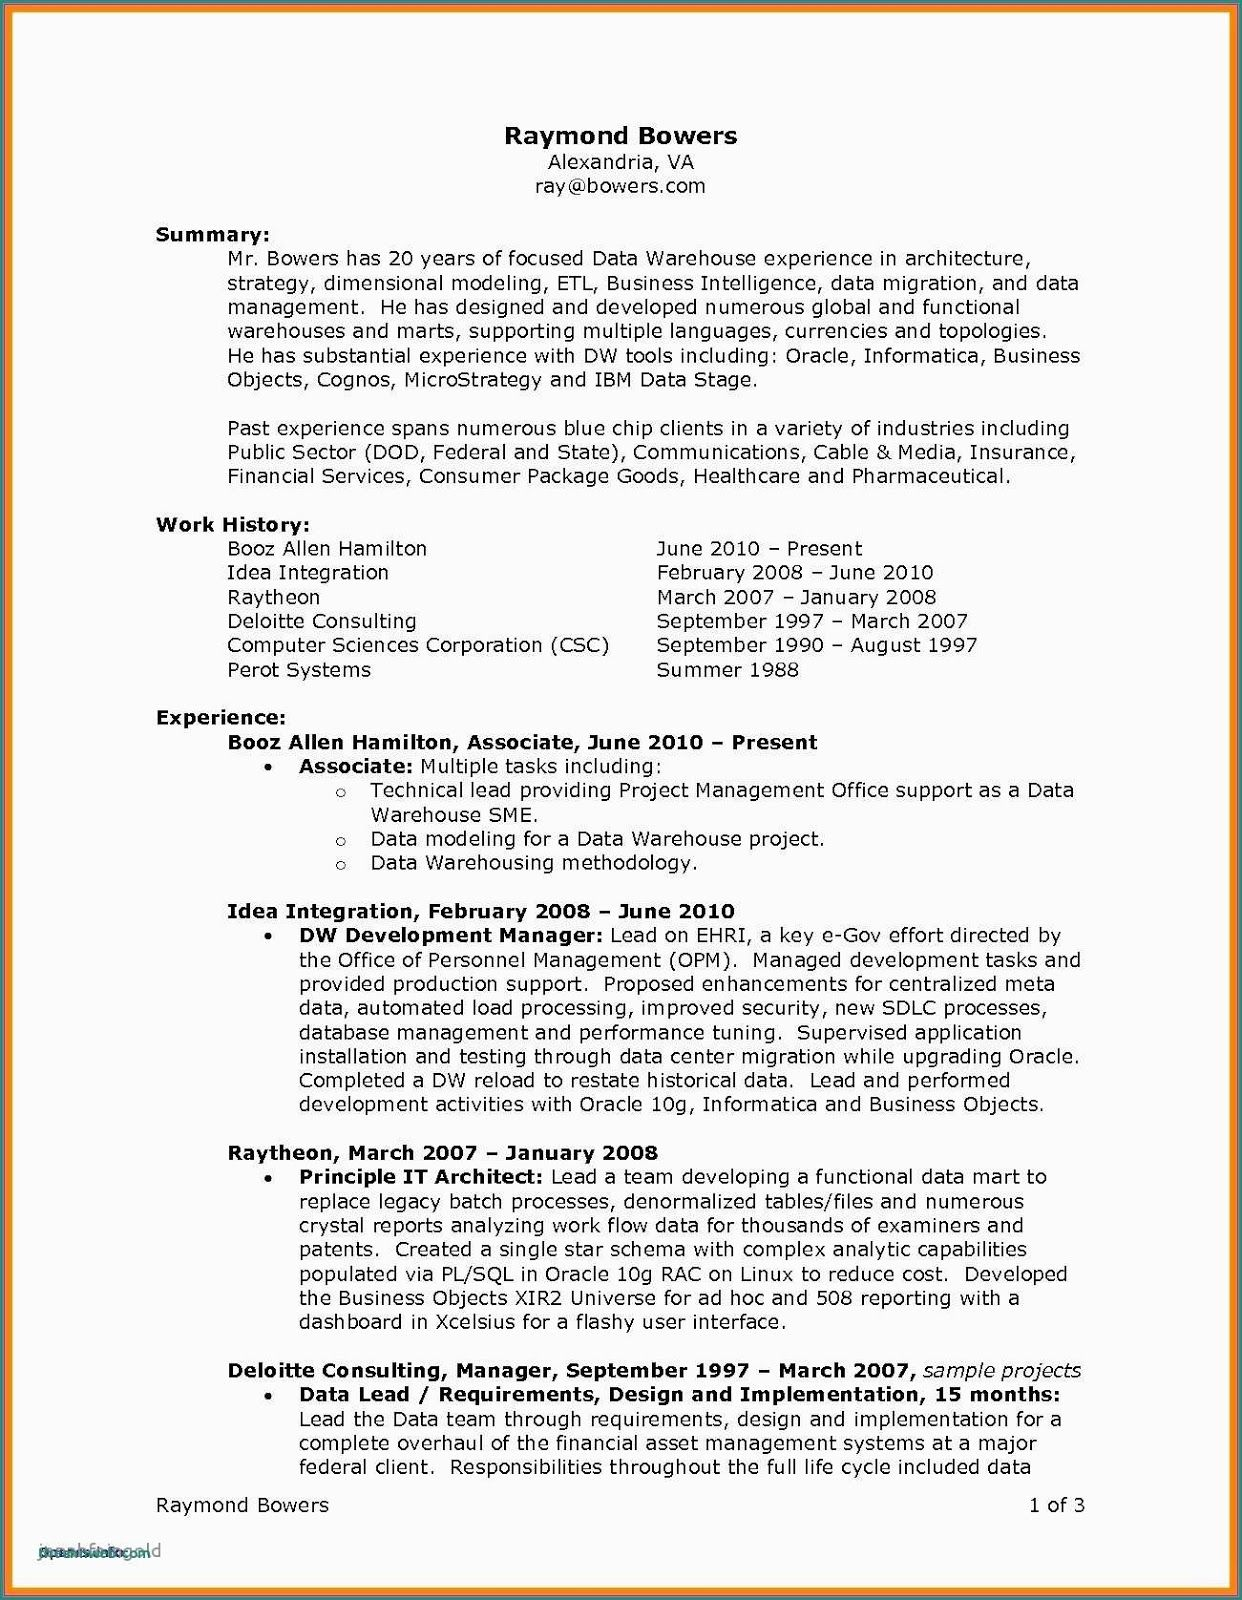 college resume examples short professional summary for entry level pharmacy assistant Resume College Resume Examples 2020